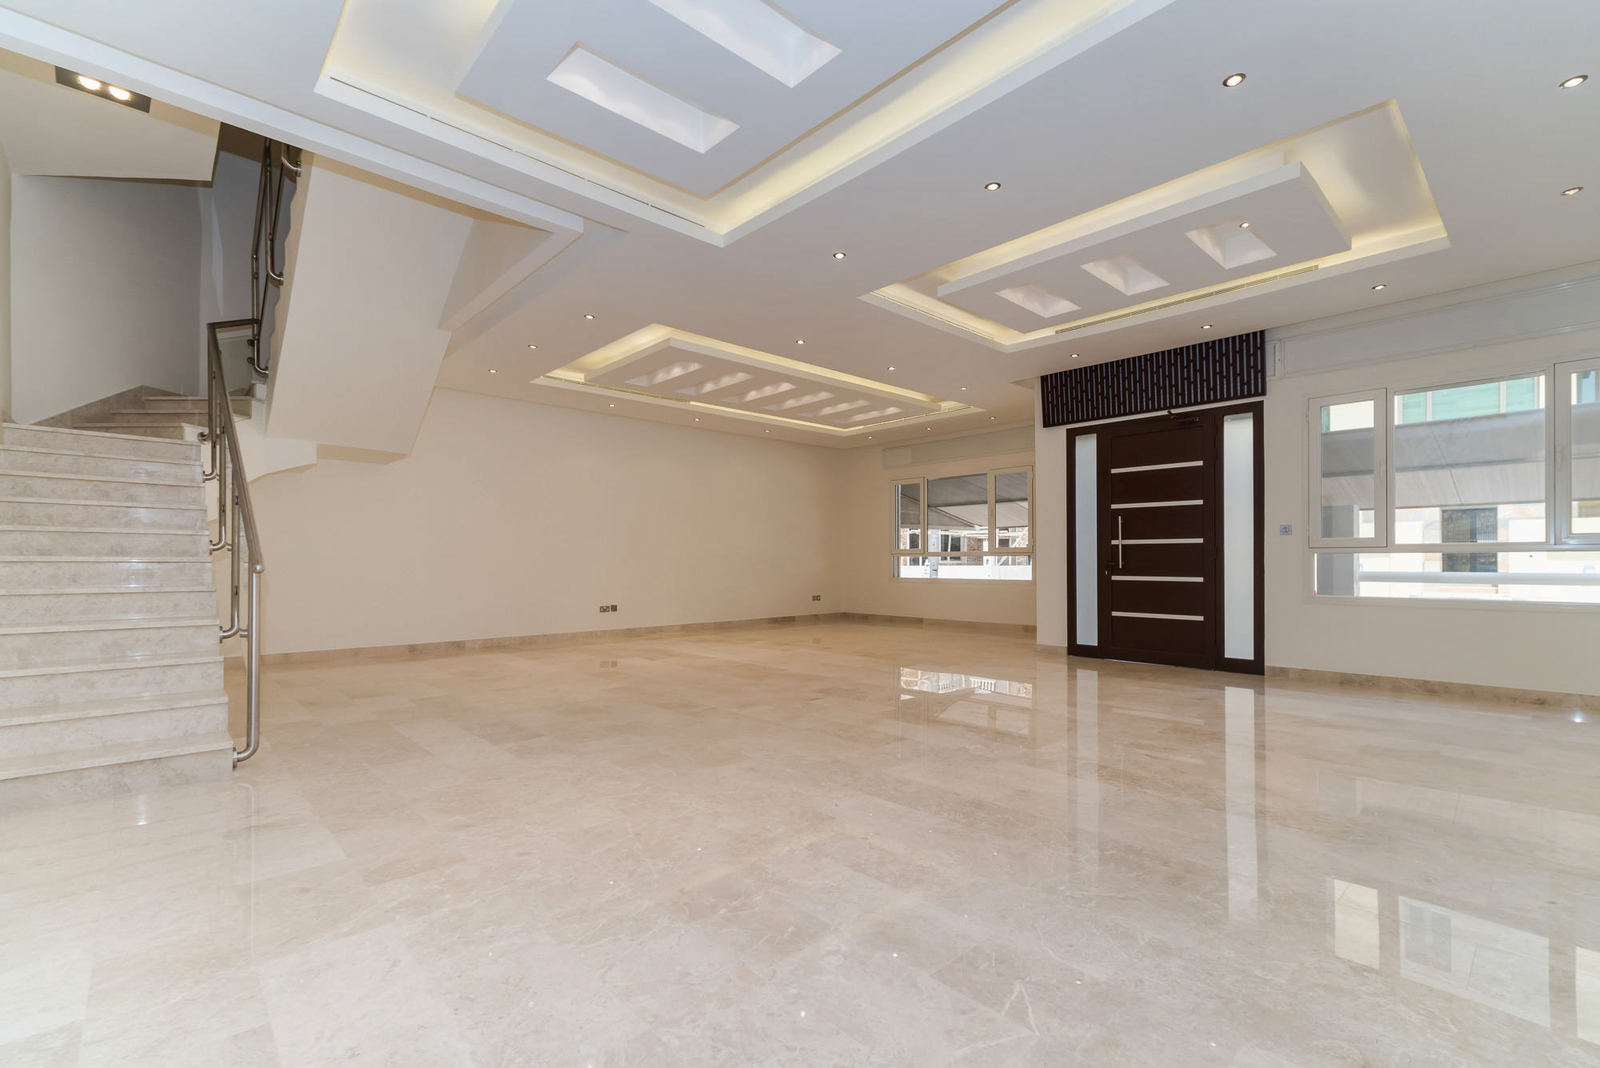 Salam – elegant, unfurnished, four bedroom duplex